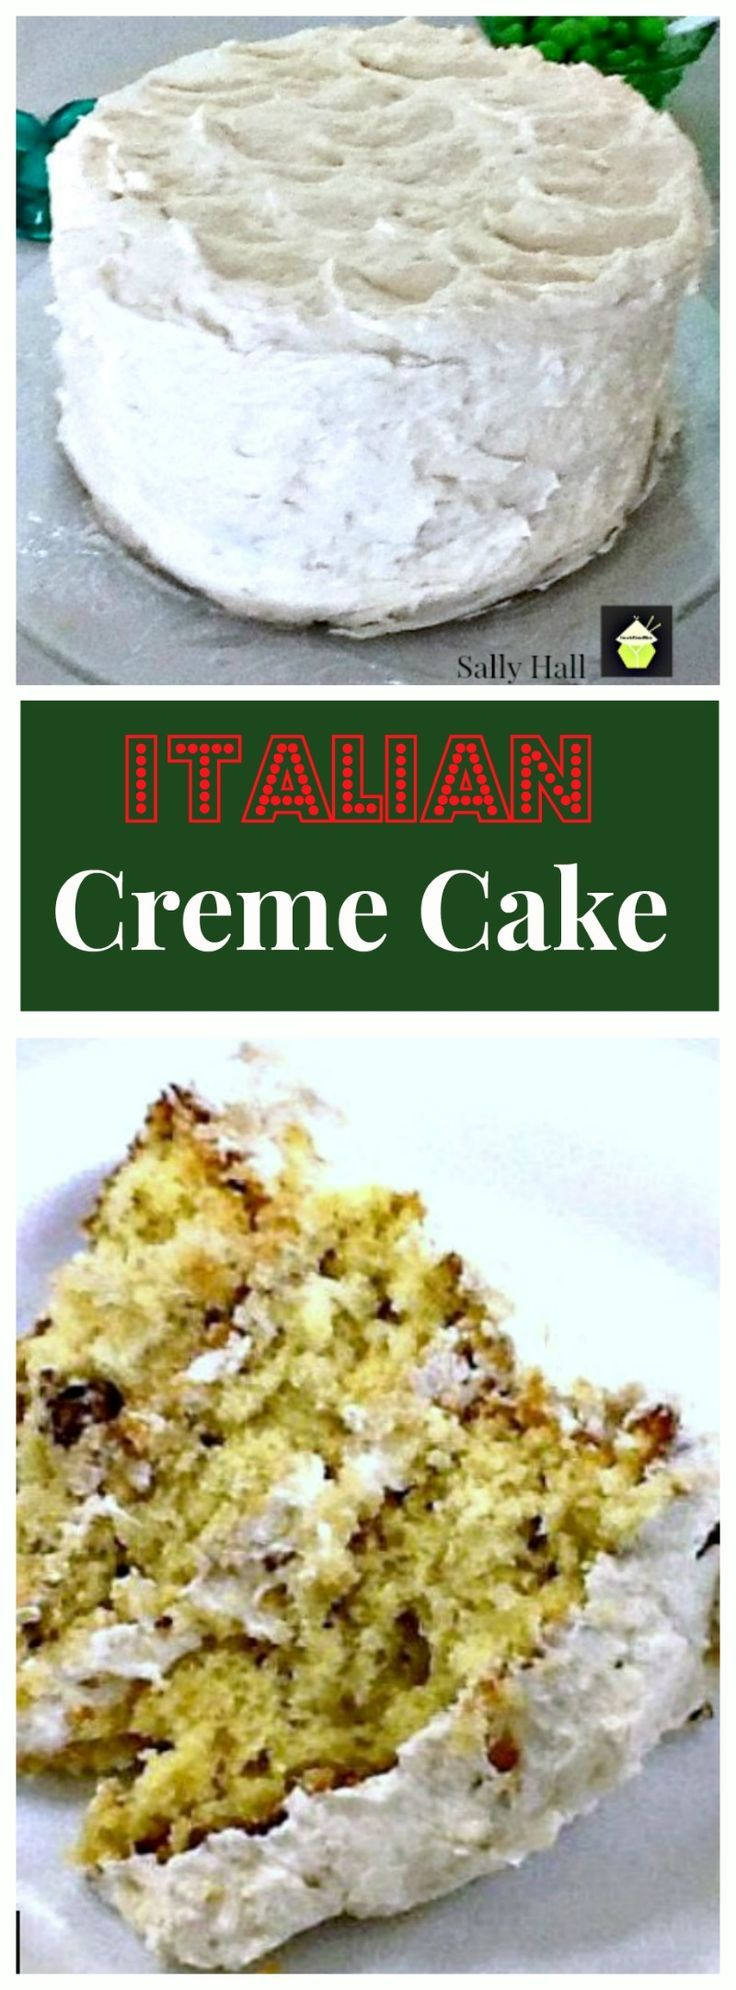 awesome cakes delicious recipes yummy food eat cake cream cheeses ...